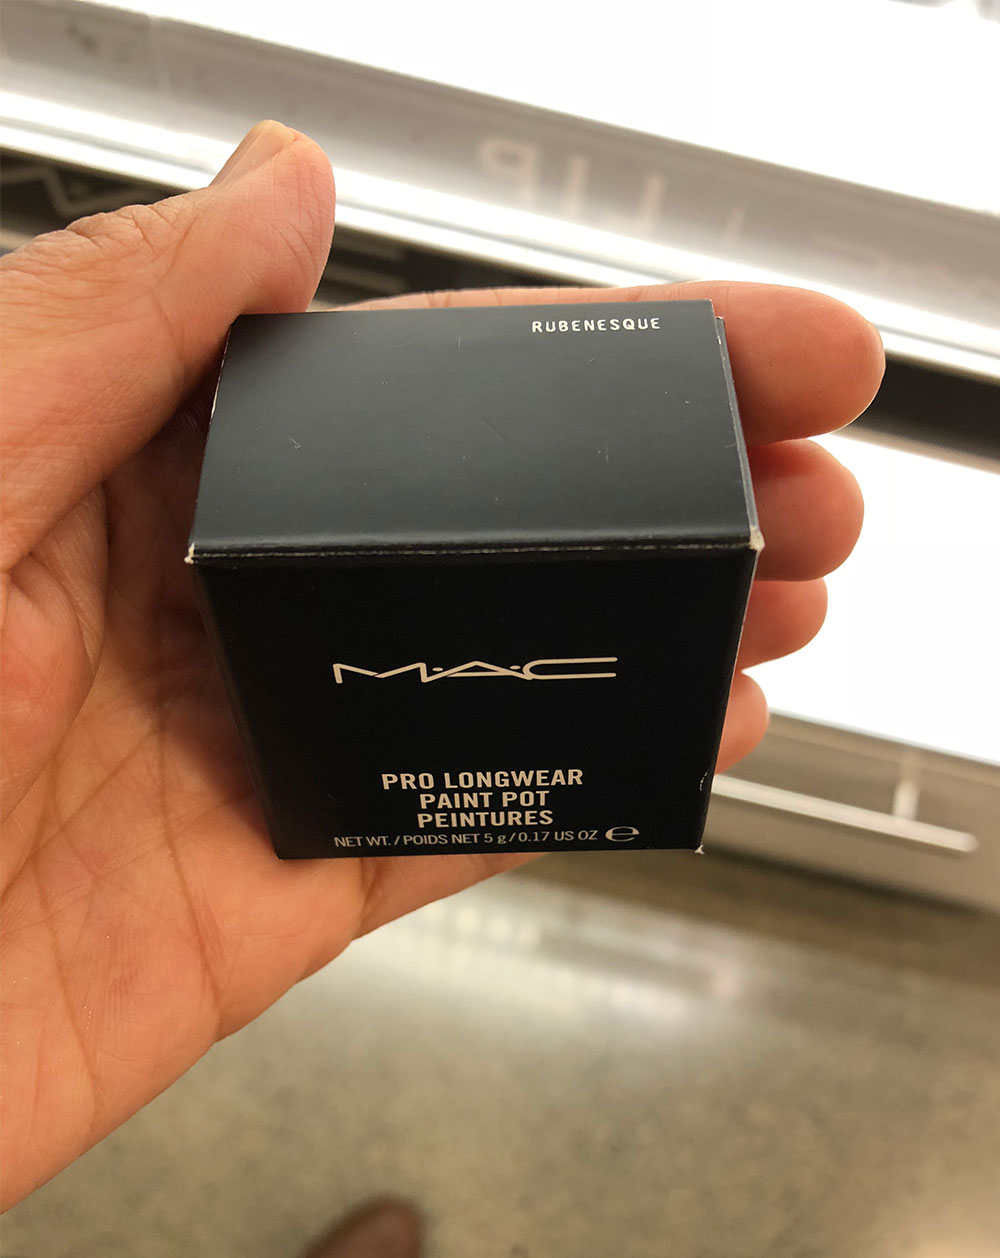 Up to 50% Off MAC Cosmetics at Nordstrom Rack - Makeup and